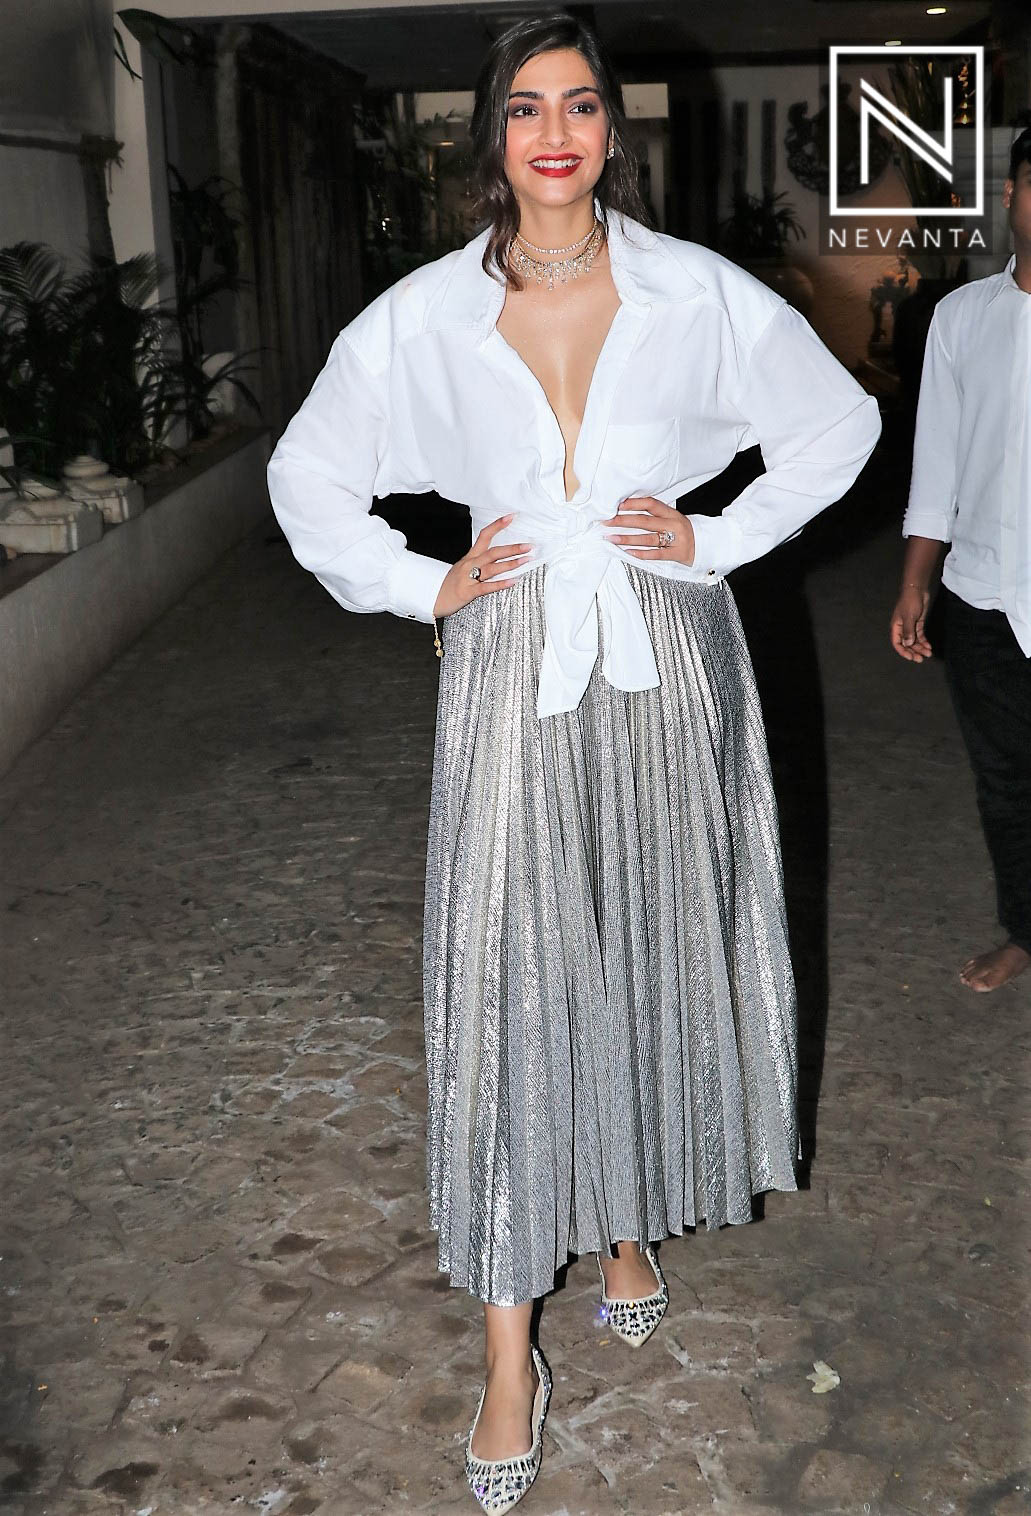 b9cb01657 Sonam Kapoor looked all pretty in a white knotted top from Jacquemus teamed  with a metallic pleated skirt from Emilia Wickstead at her birthday bash -  ...